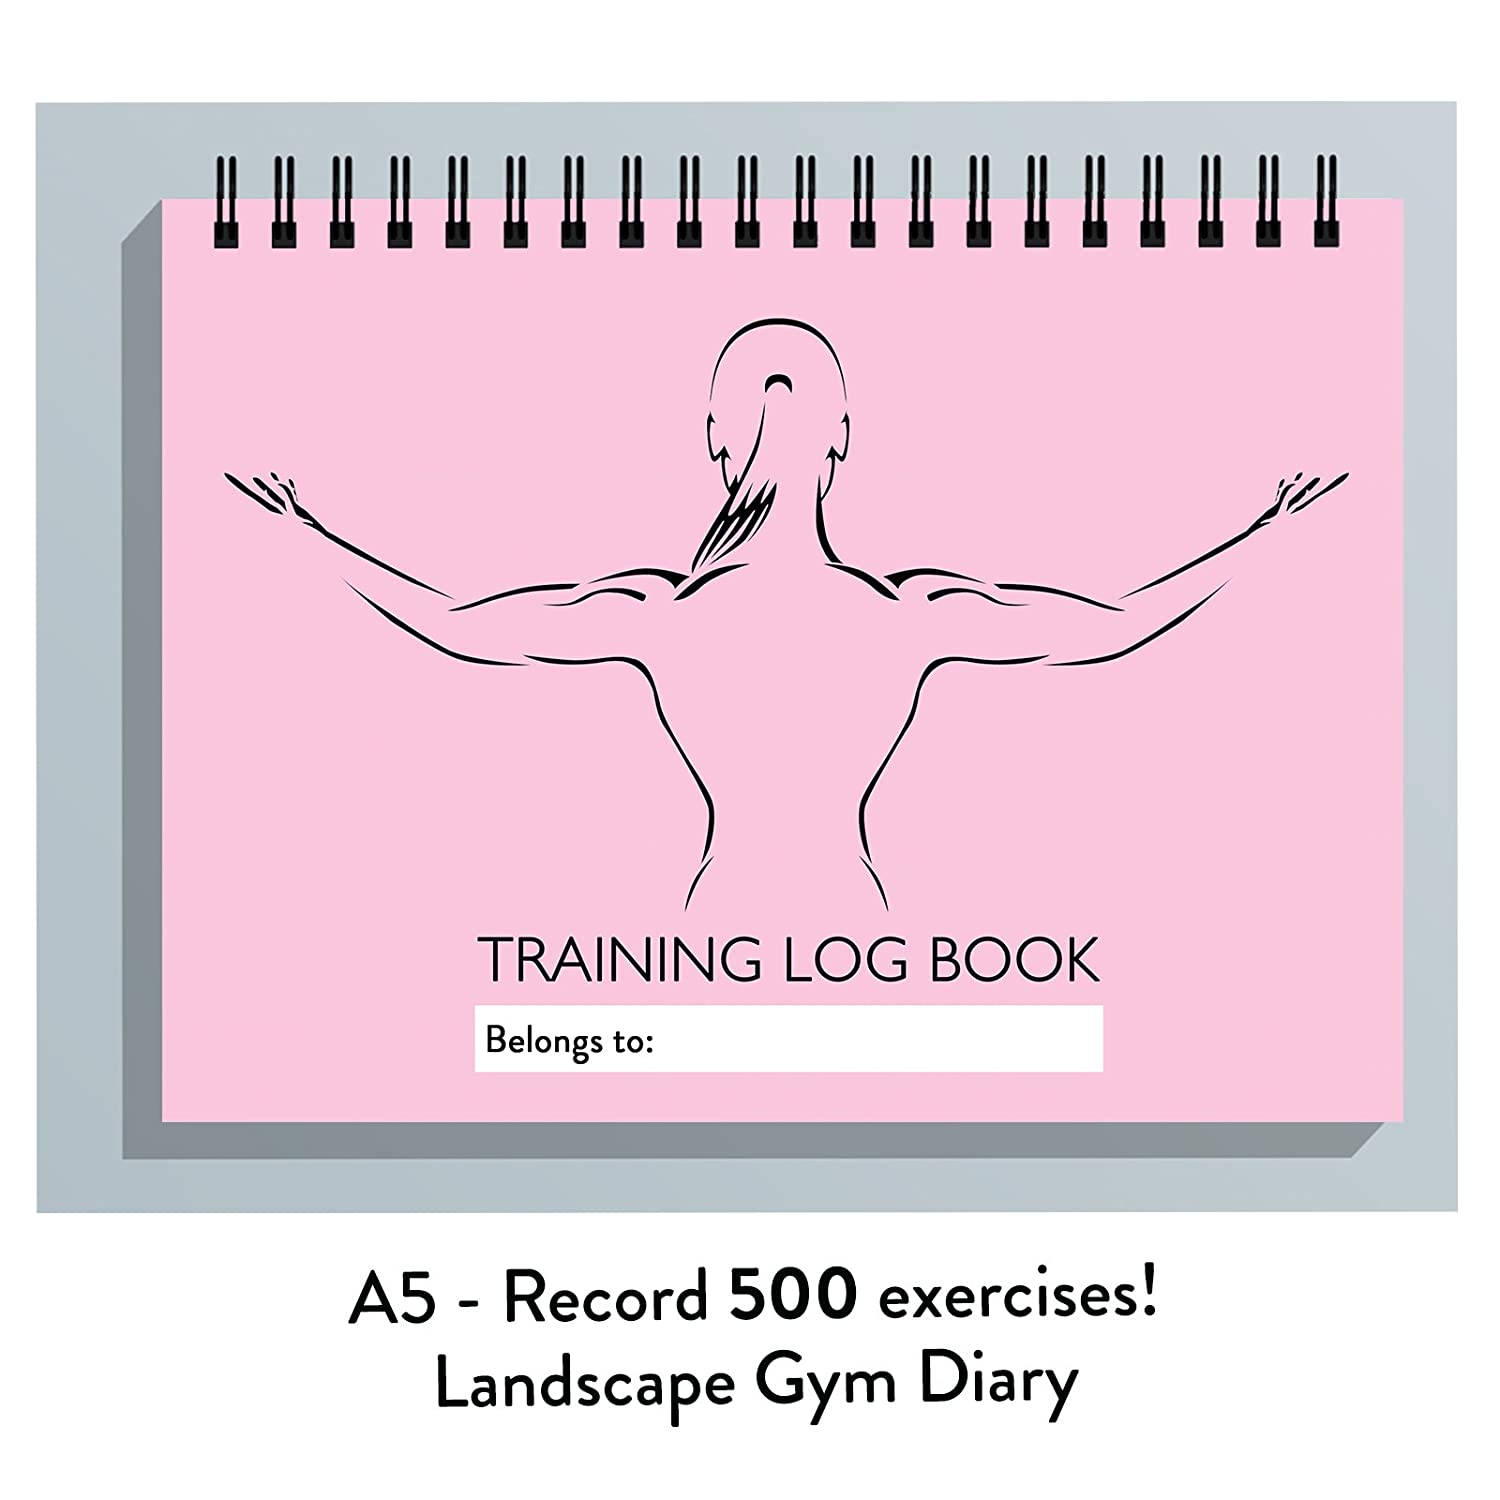 LADIES MEN GYM TRAINING DIARY,12 WEEK EXERCISE JOURNAL, LOG BOOK,REPS, WEIGHTS (PINK LADY) The Calorie Club